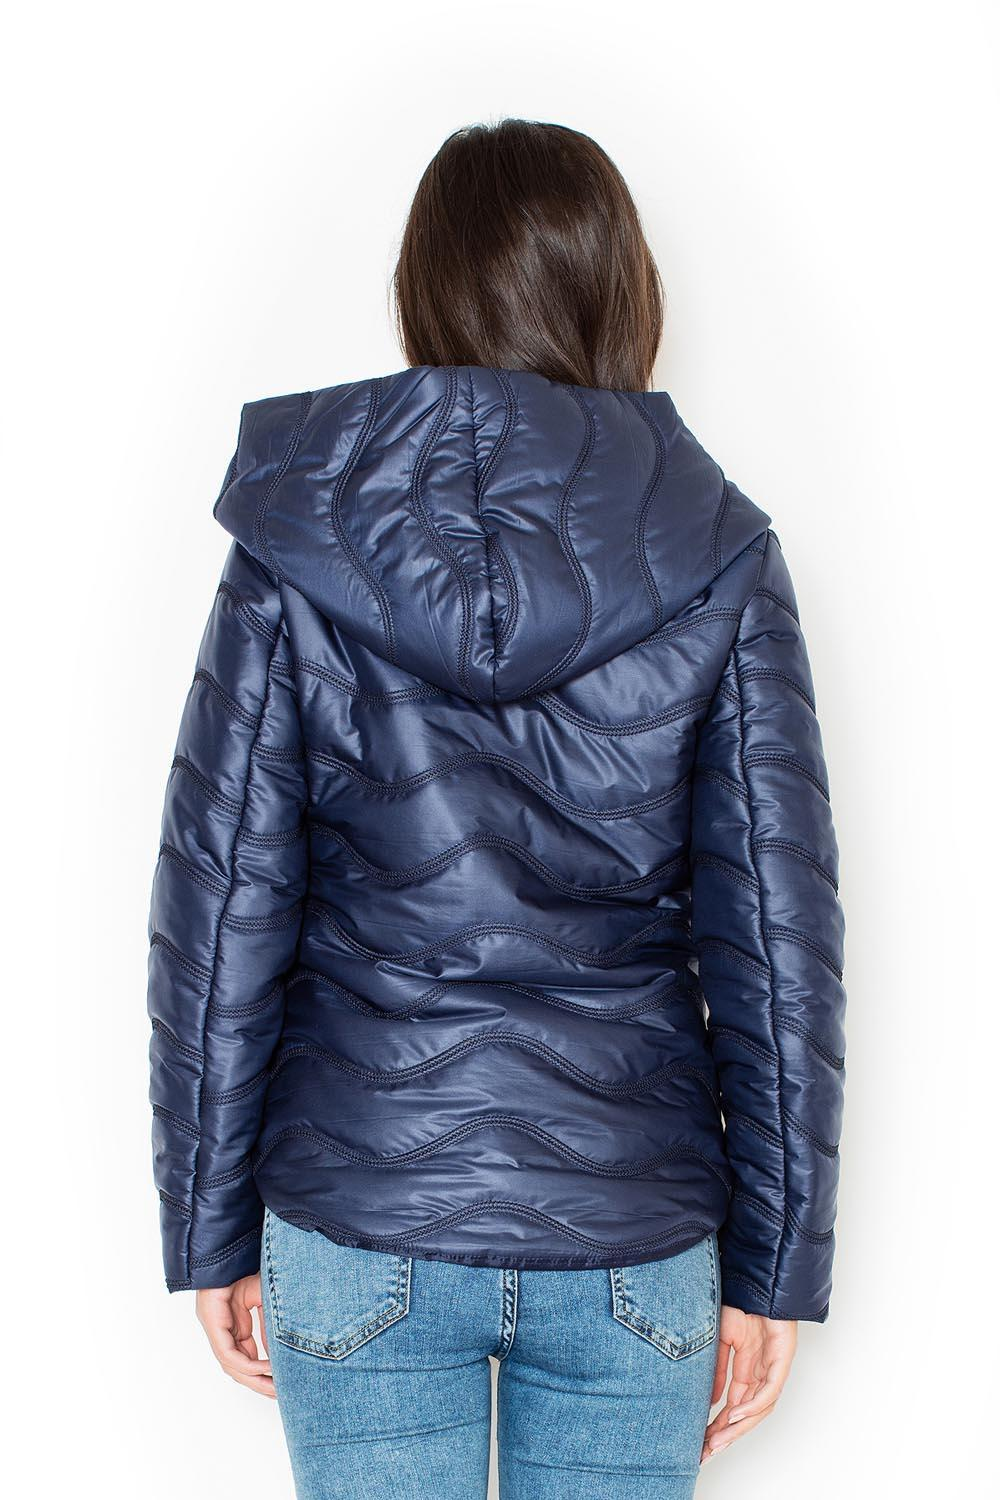 Blue Katrus Jackets & Coats